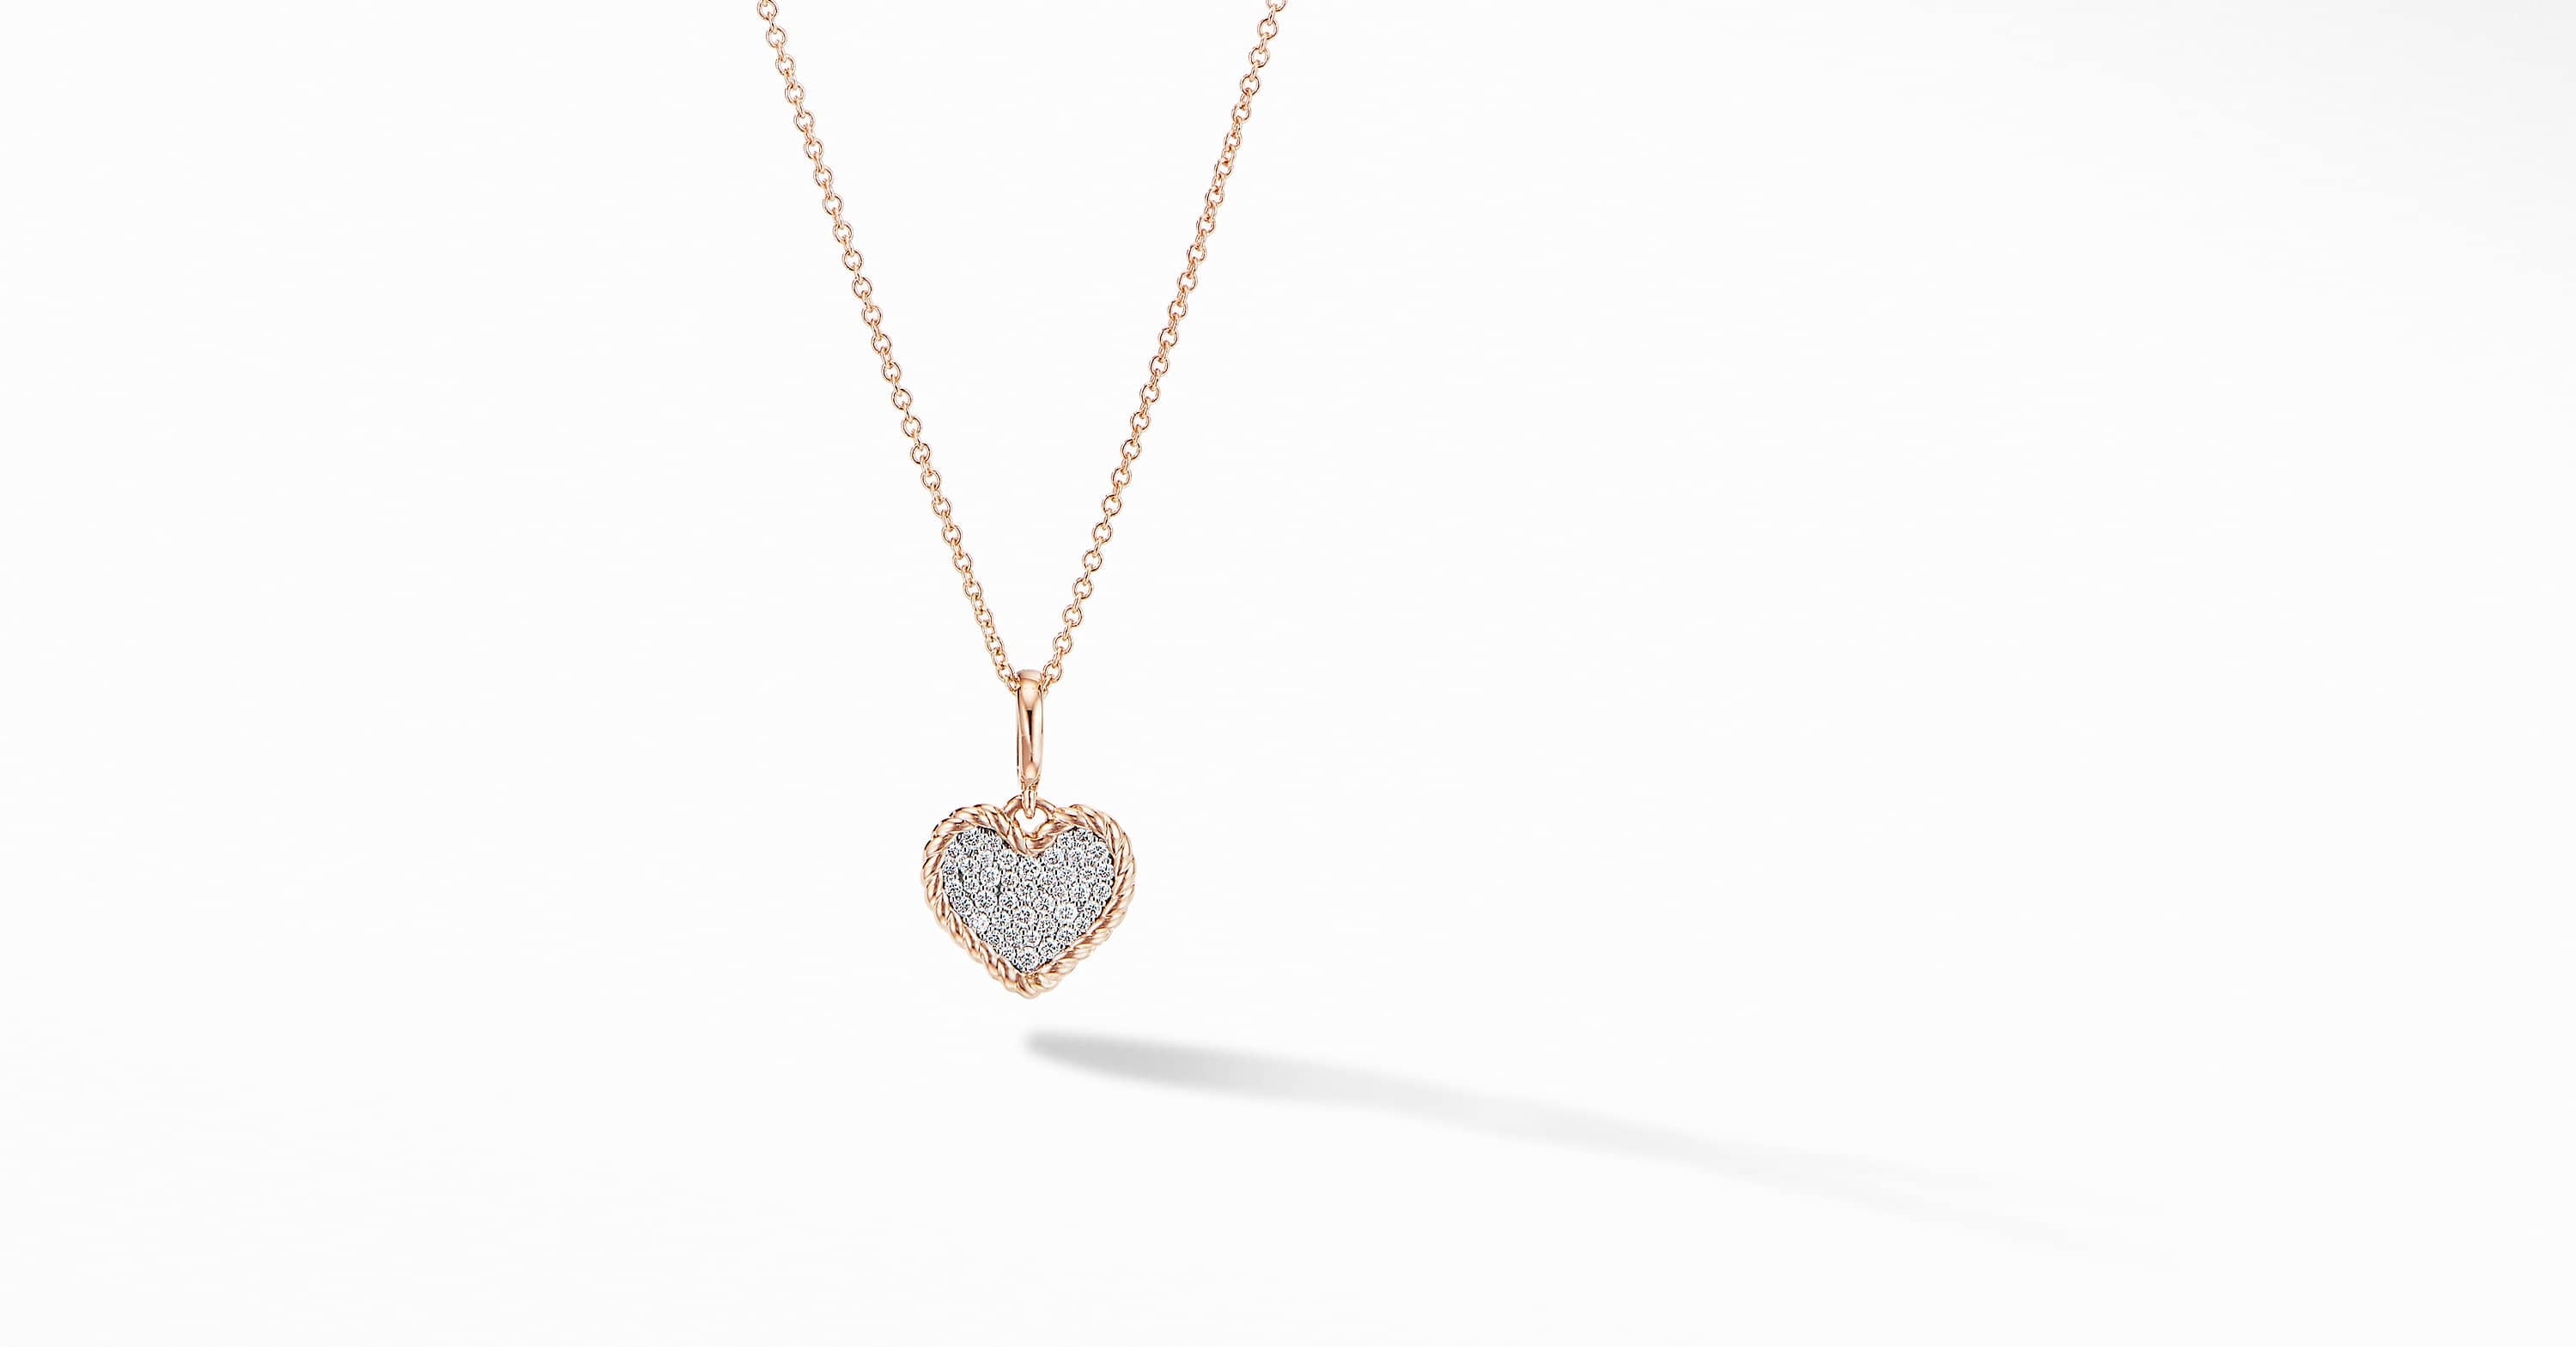 Cable Collectibles Pavé Plate Heart Charm Necklace in 18K Rose Gold